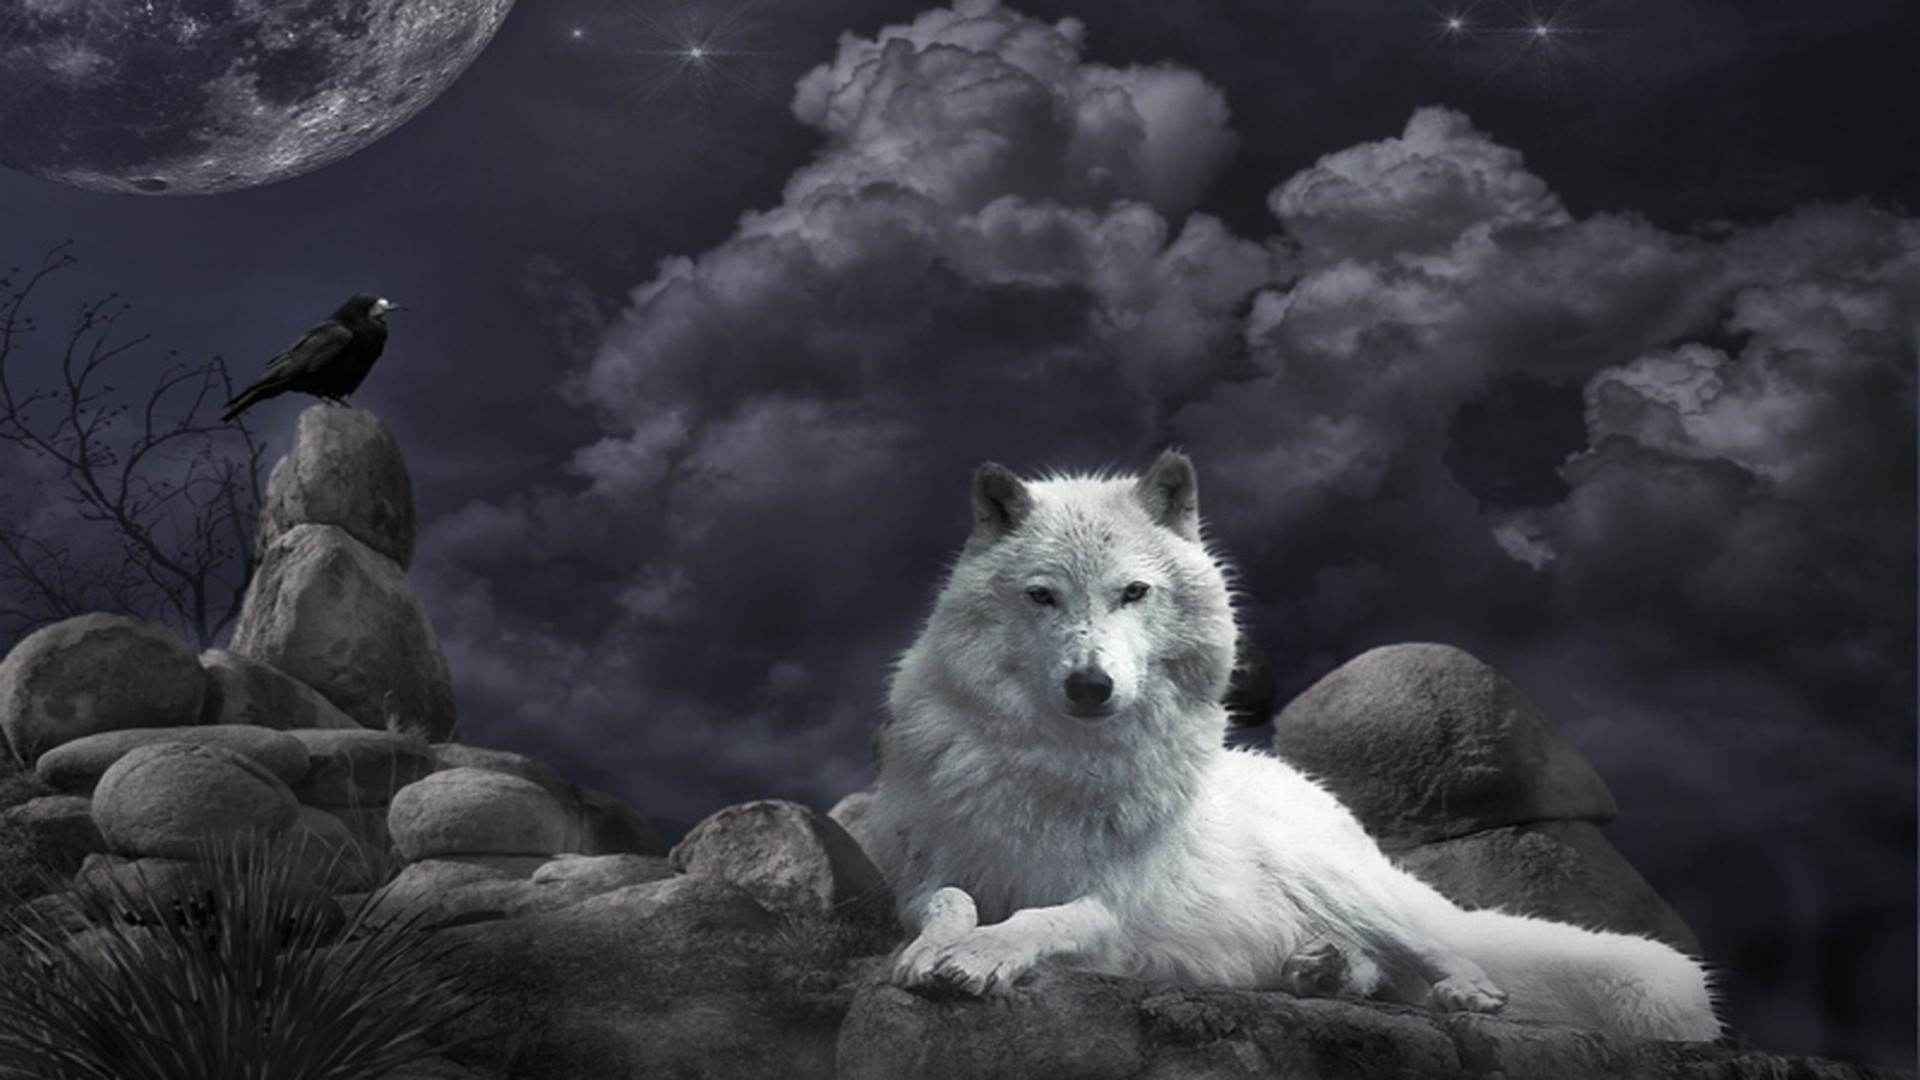 1920x1080 HD Wolf Wallpapers p 1920×1200 Wolf Wallpapers Desktop (40 Wallpapers) |  Adorable